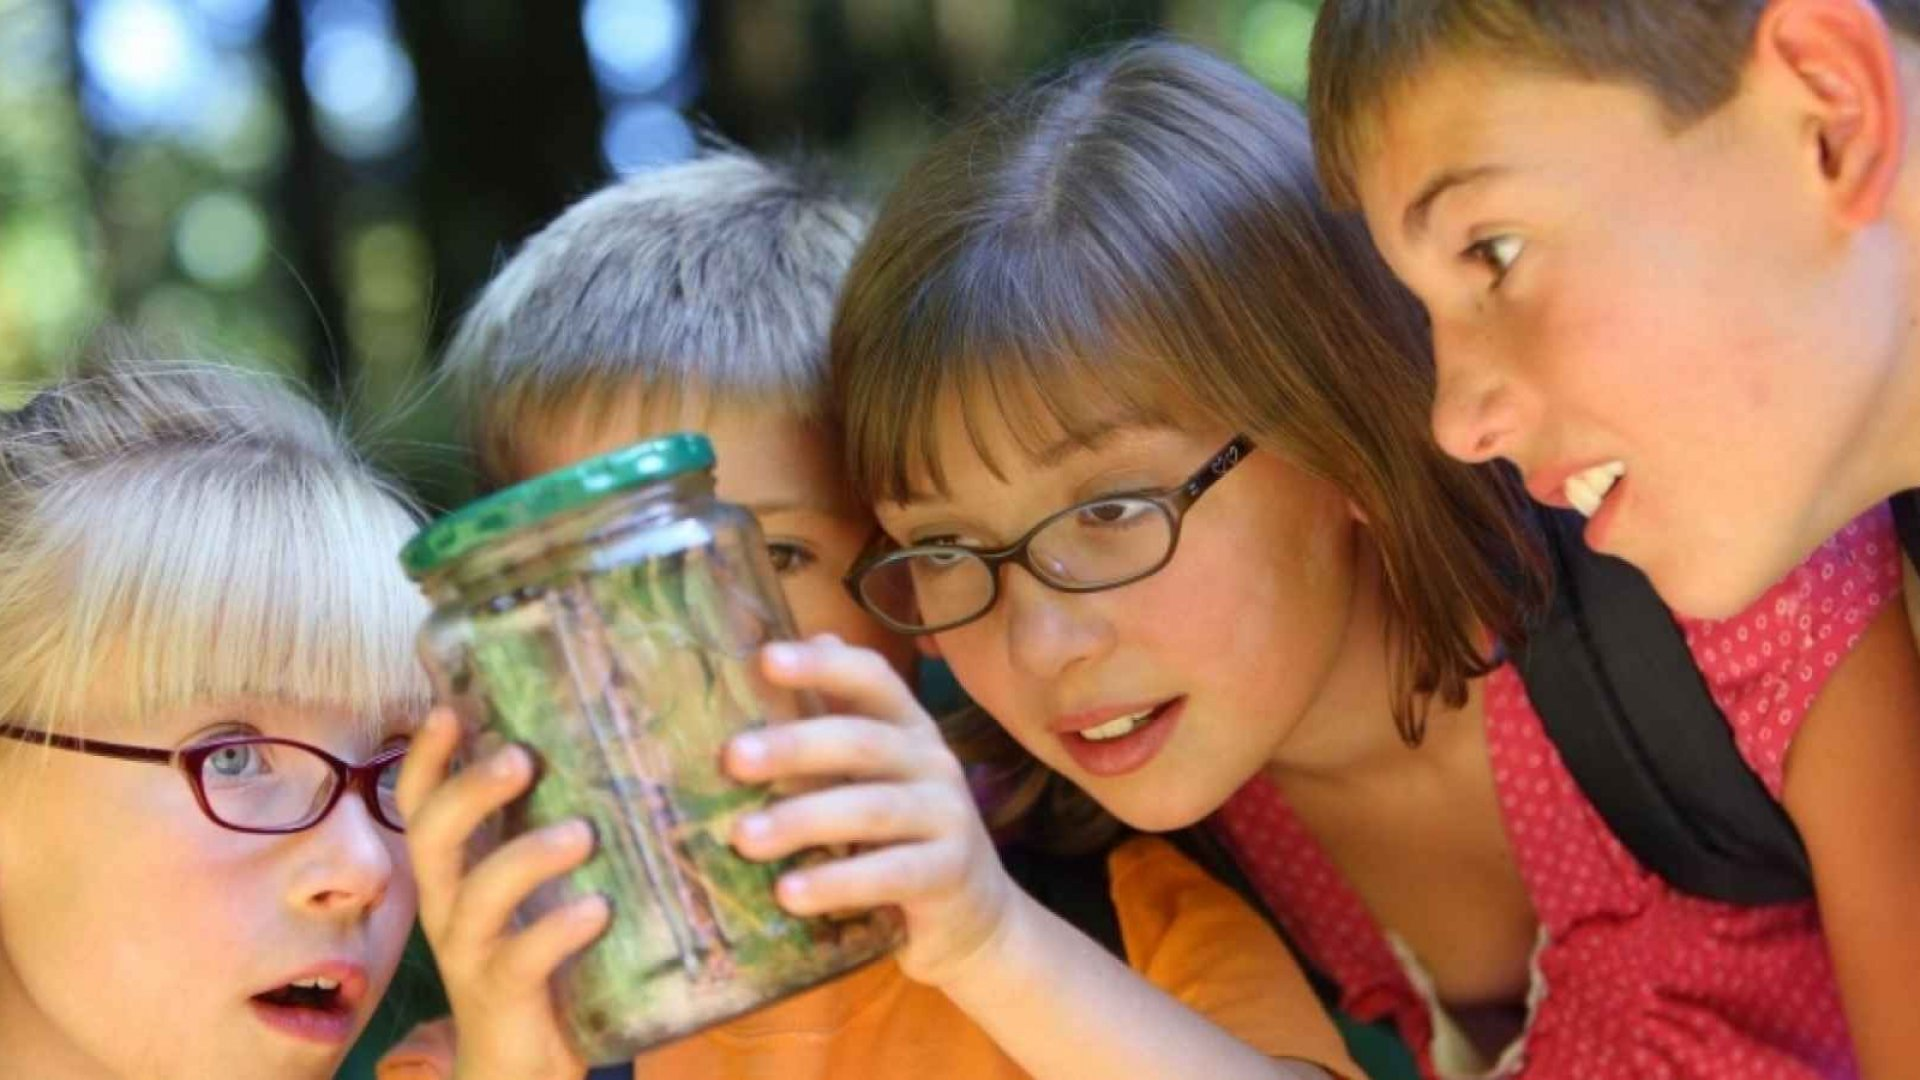 Summer Camp Can Give You a Tax Credit if You Know These 6 Things